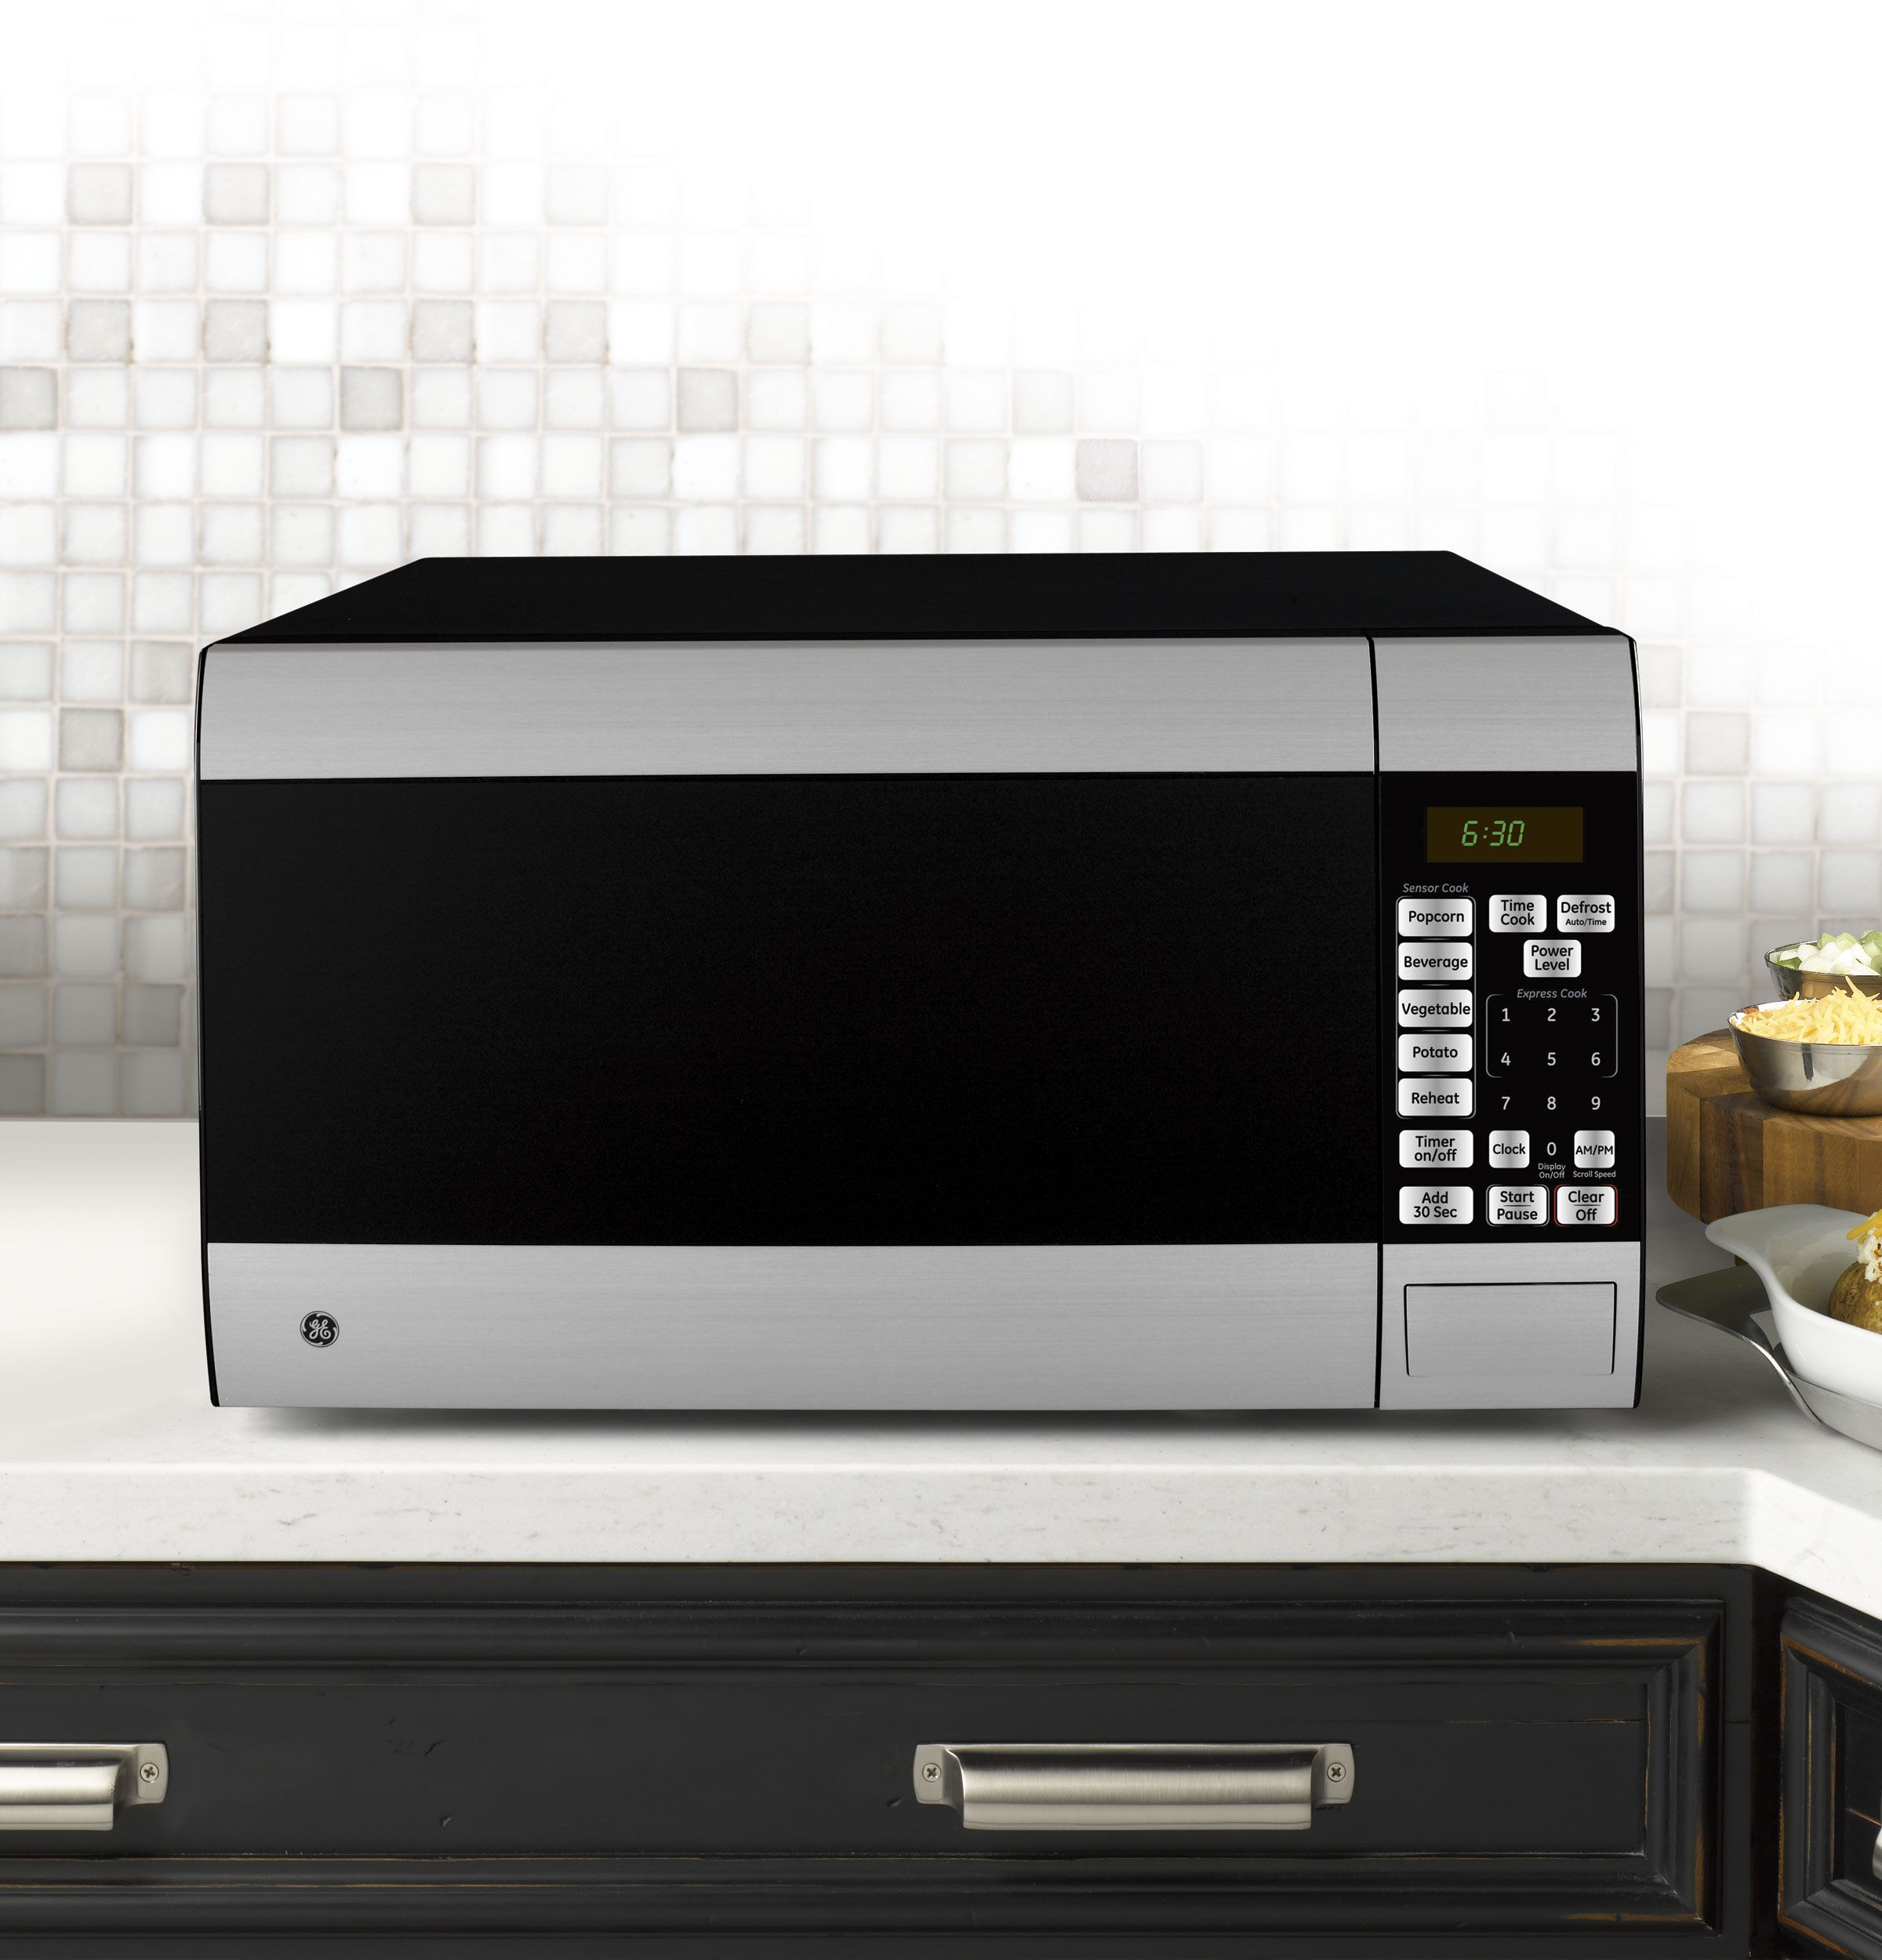 Great Microwave Easy To Use Quiet While Running And Doesn T